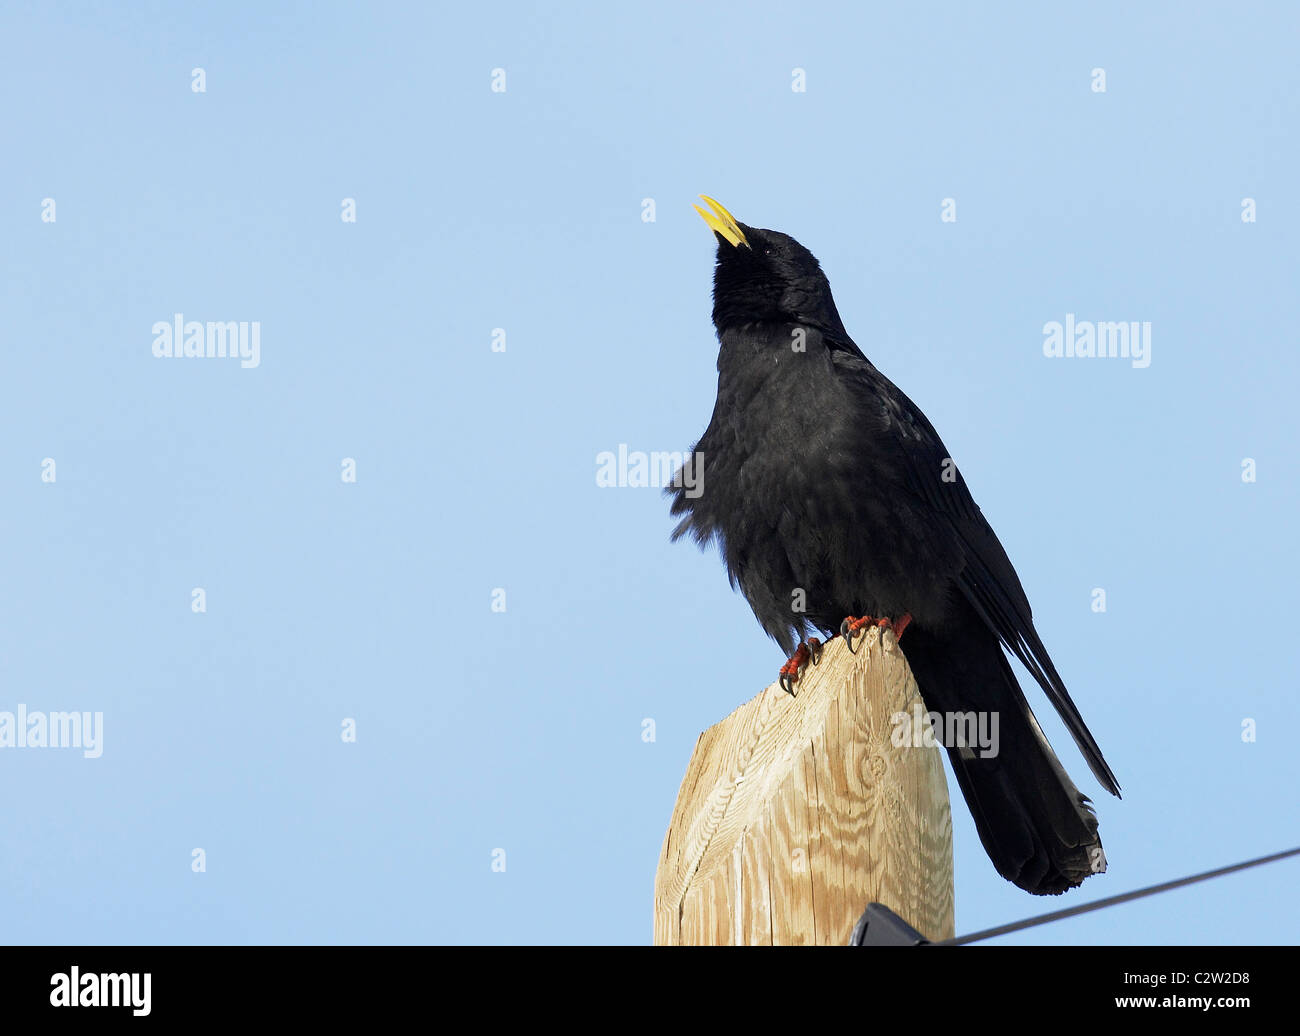 Yellow-billed Chough, Alpine Chough (Pyrrhocorax graculus) singing from a wooden post. Stock Photo